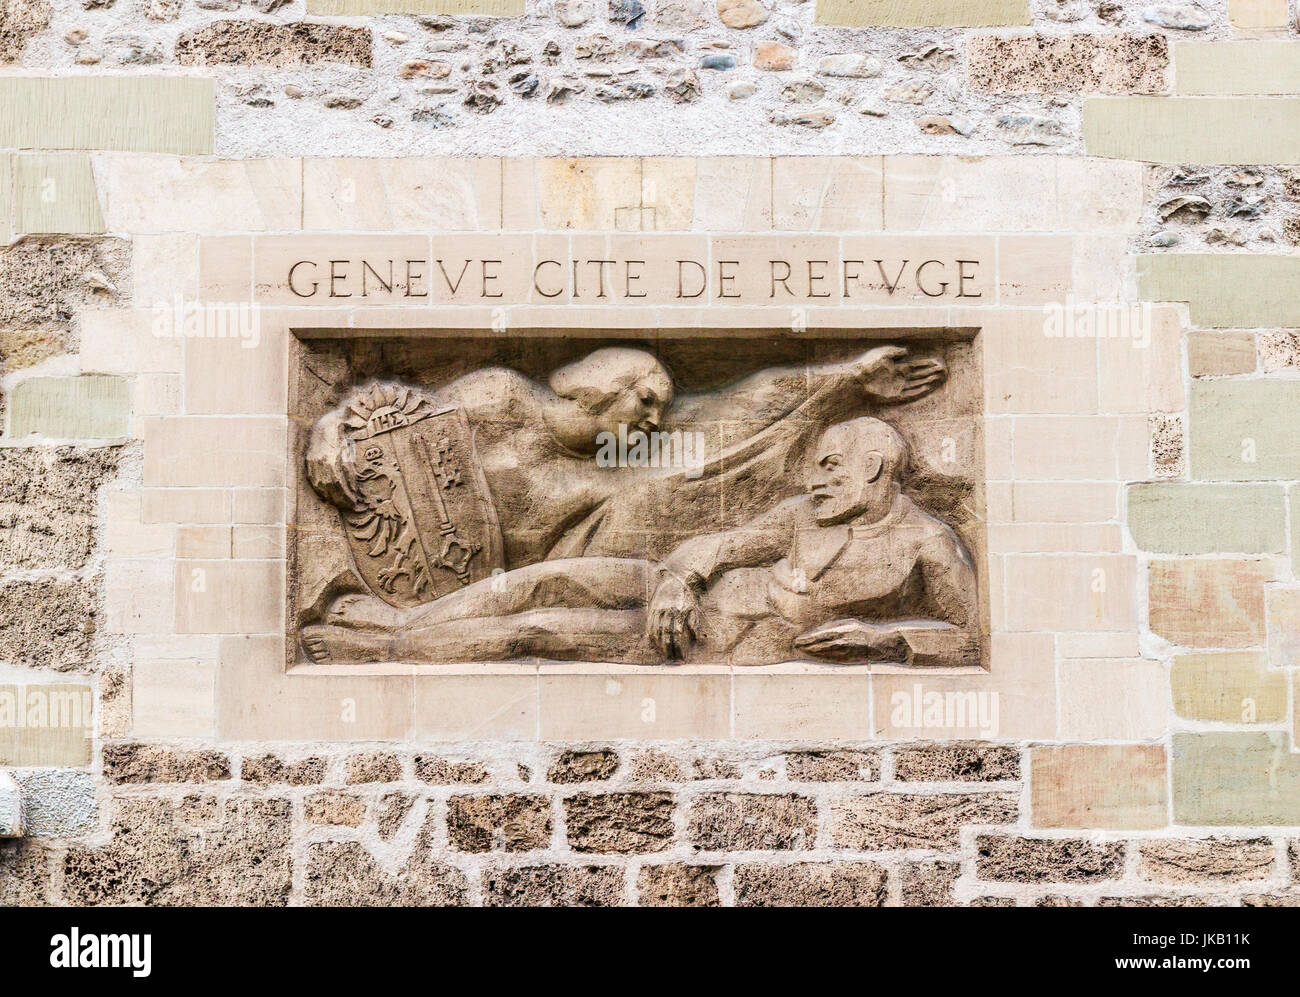 Sculpture with the inscription (ranslation of the text: 'Geneva, city of refuge')' in one of the walls - Stock Image